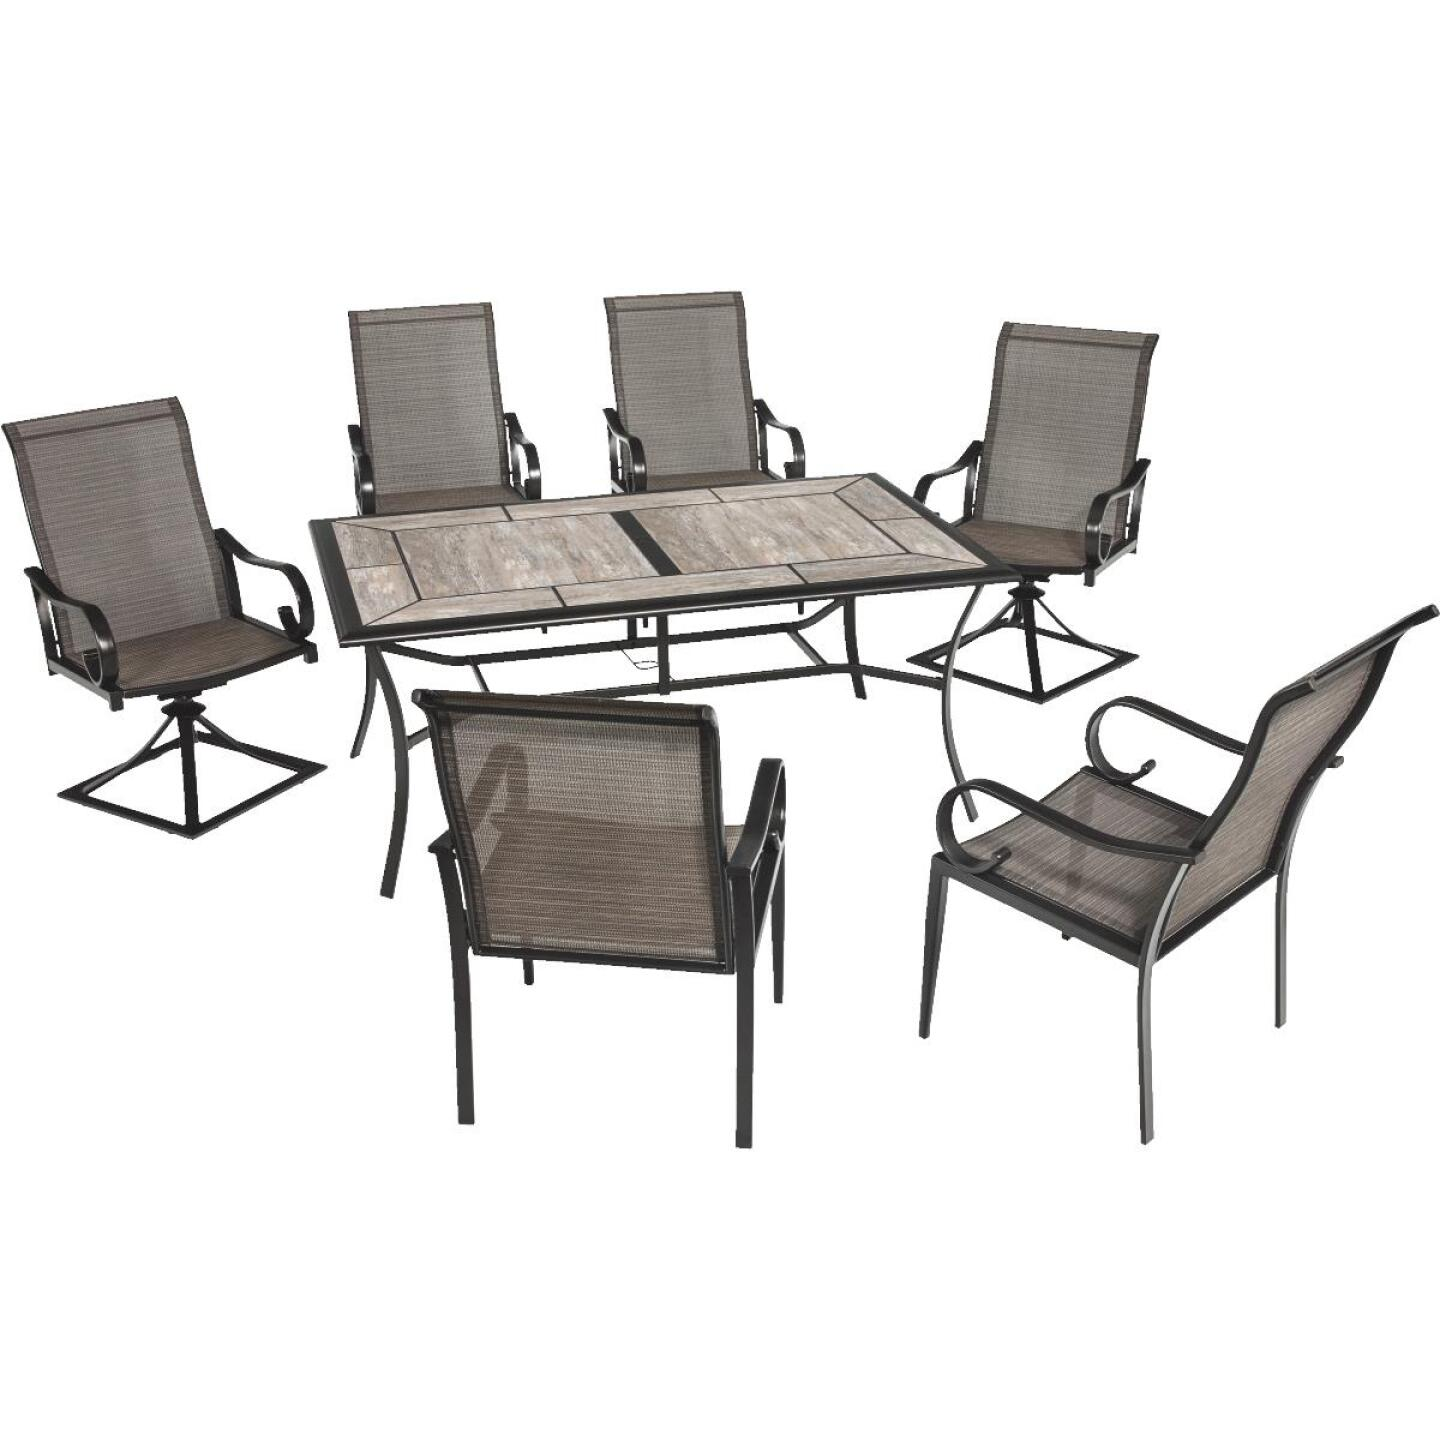 Outdoor Expressions Berkshire 7-Piece Dining Set Image 8